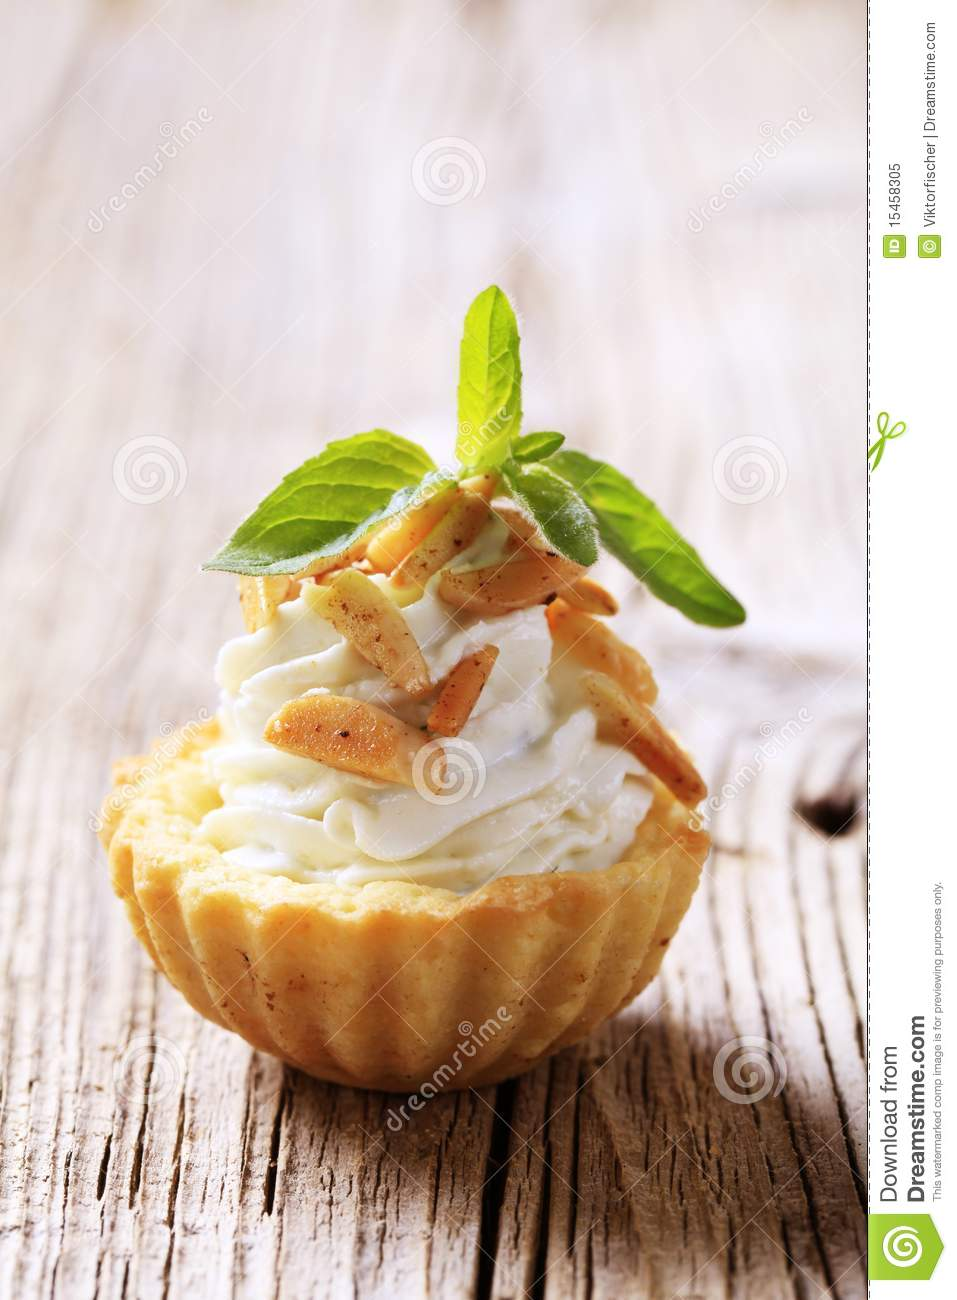 Canape royalty free stock photo image 15458305 for Canape pastry shells